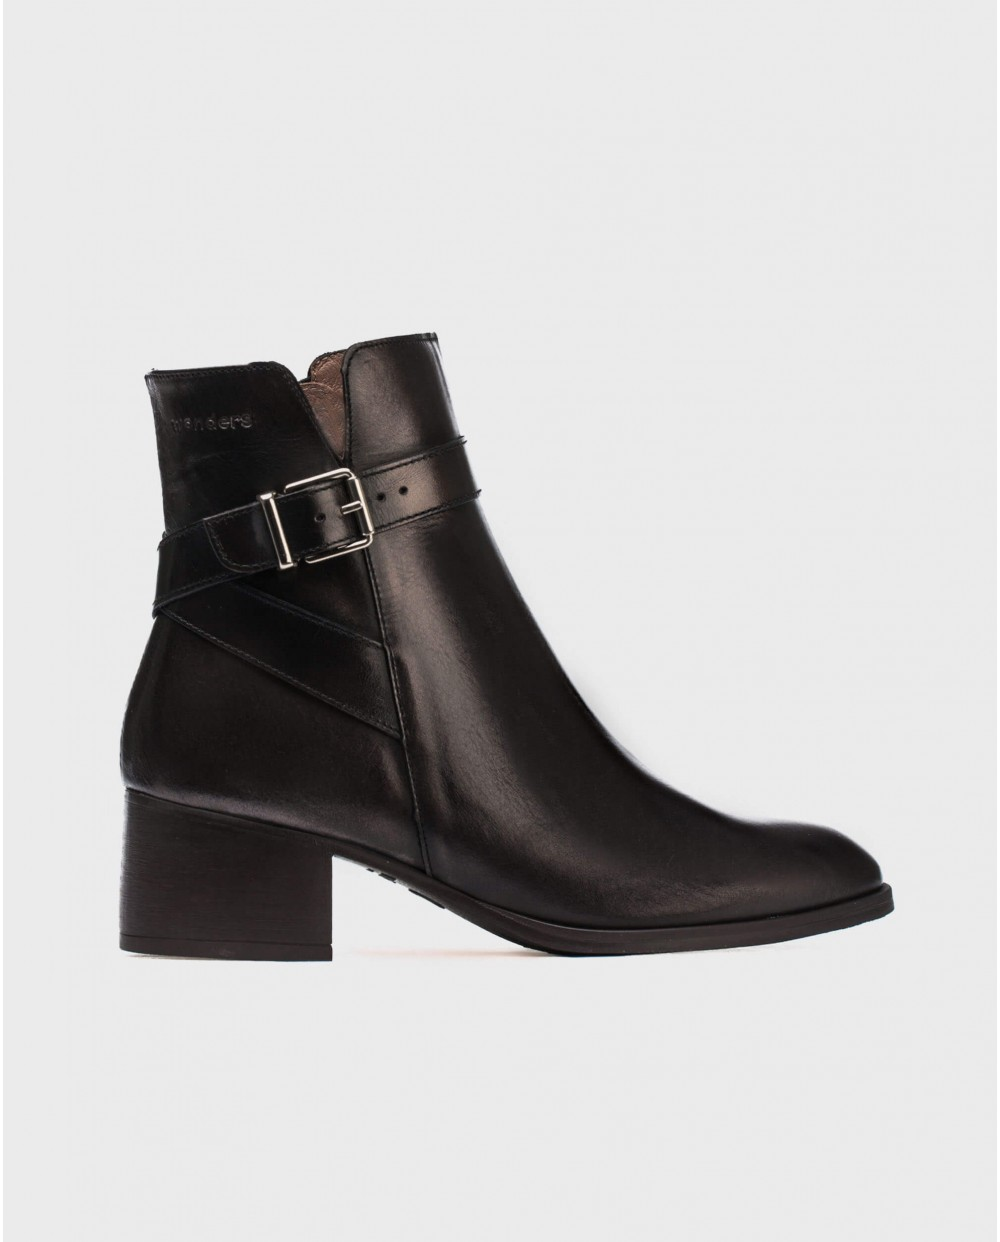 Wonders-Ankle Boots-Ankle boot with criss/cross straps